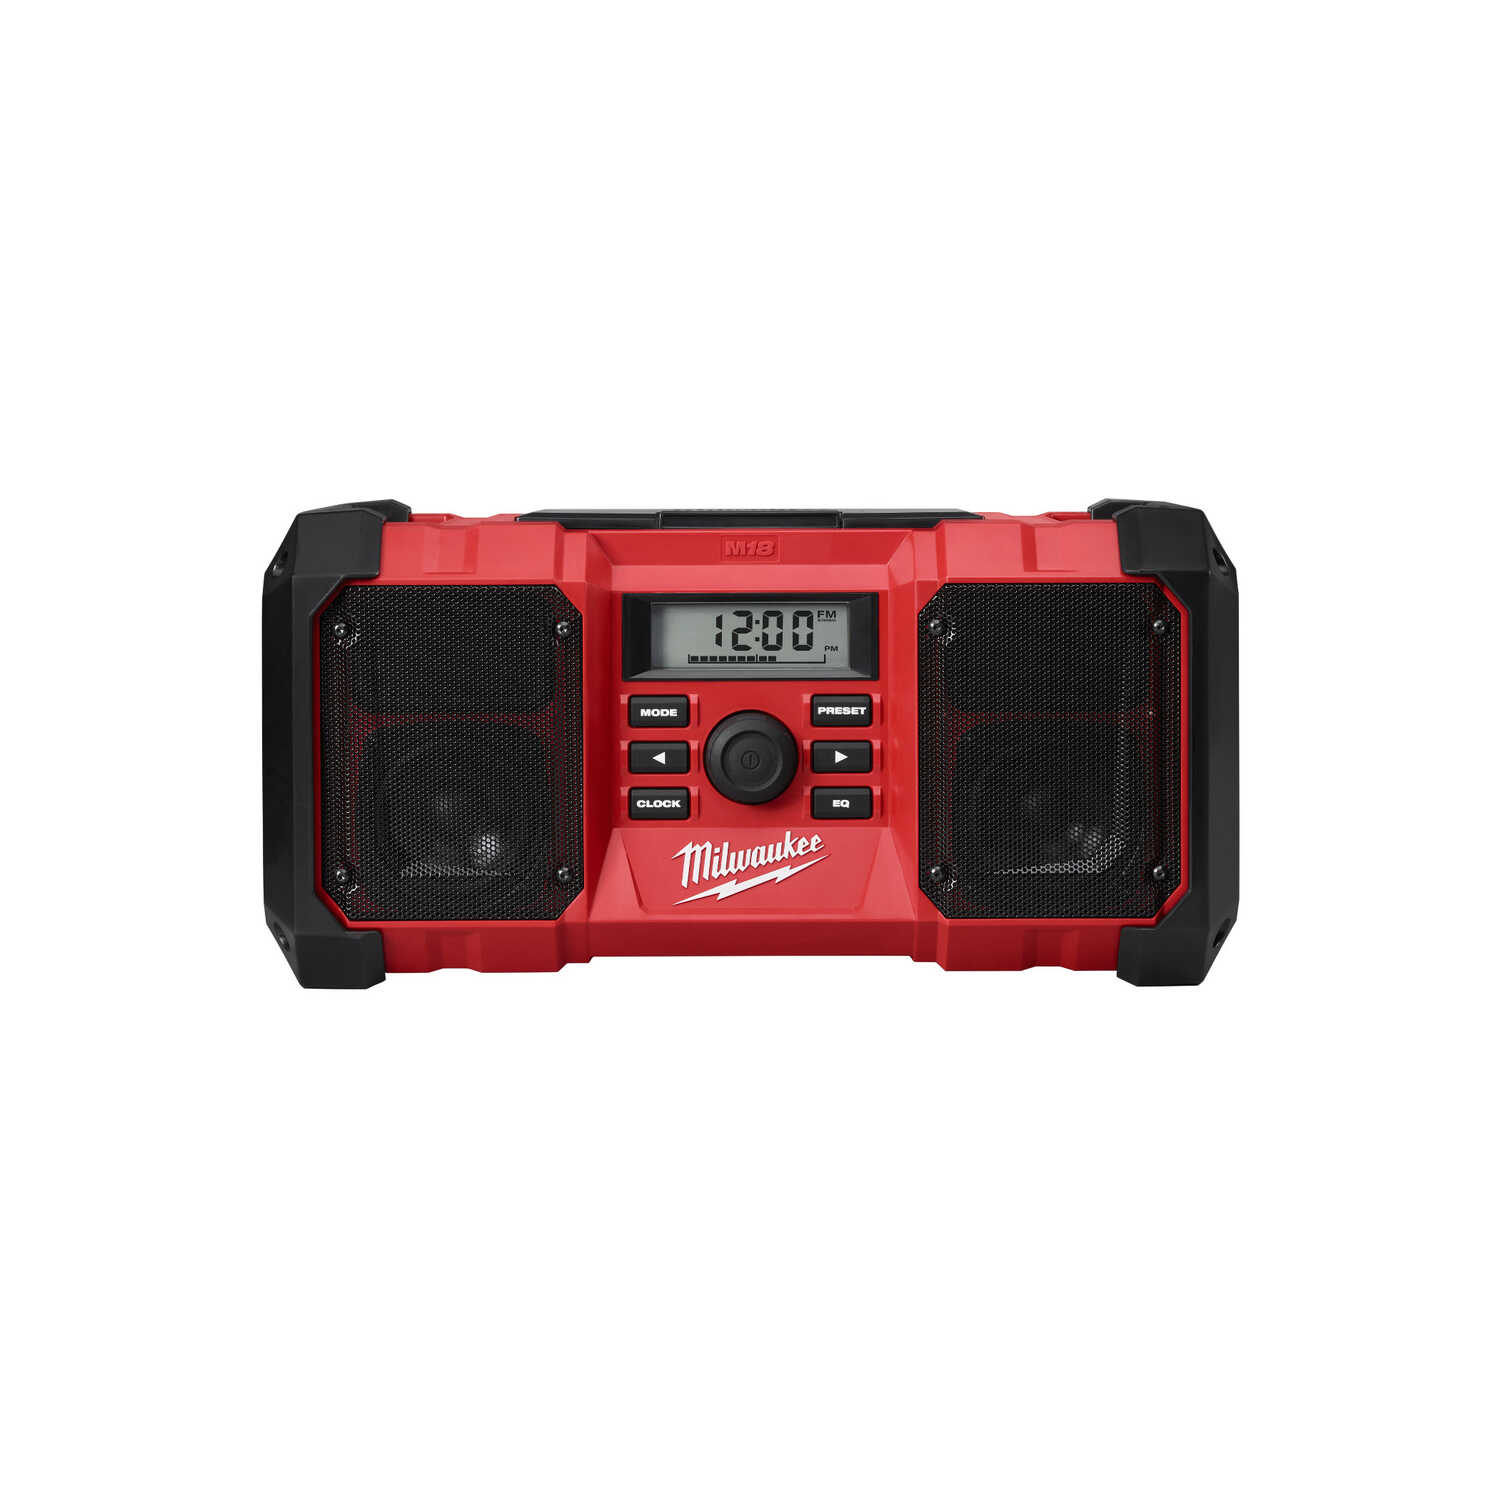 Milwaukee M18 Weather Resistant Jobsite Radio - Ace Hardware